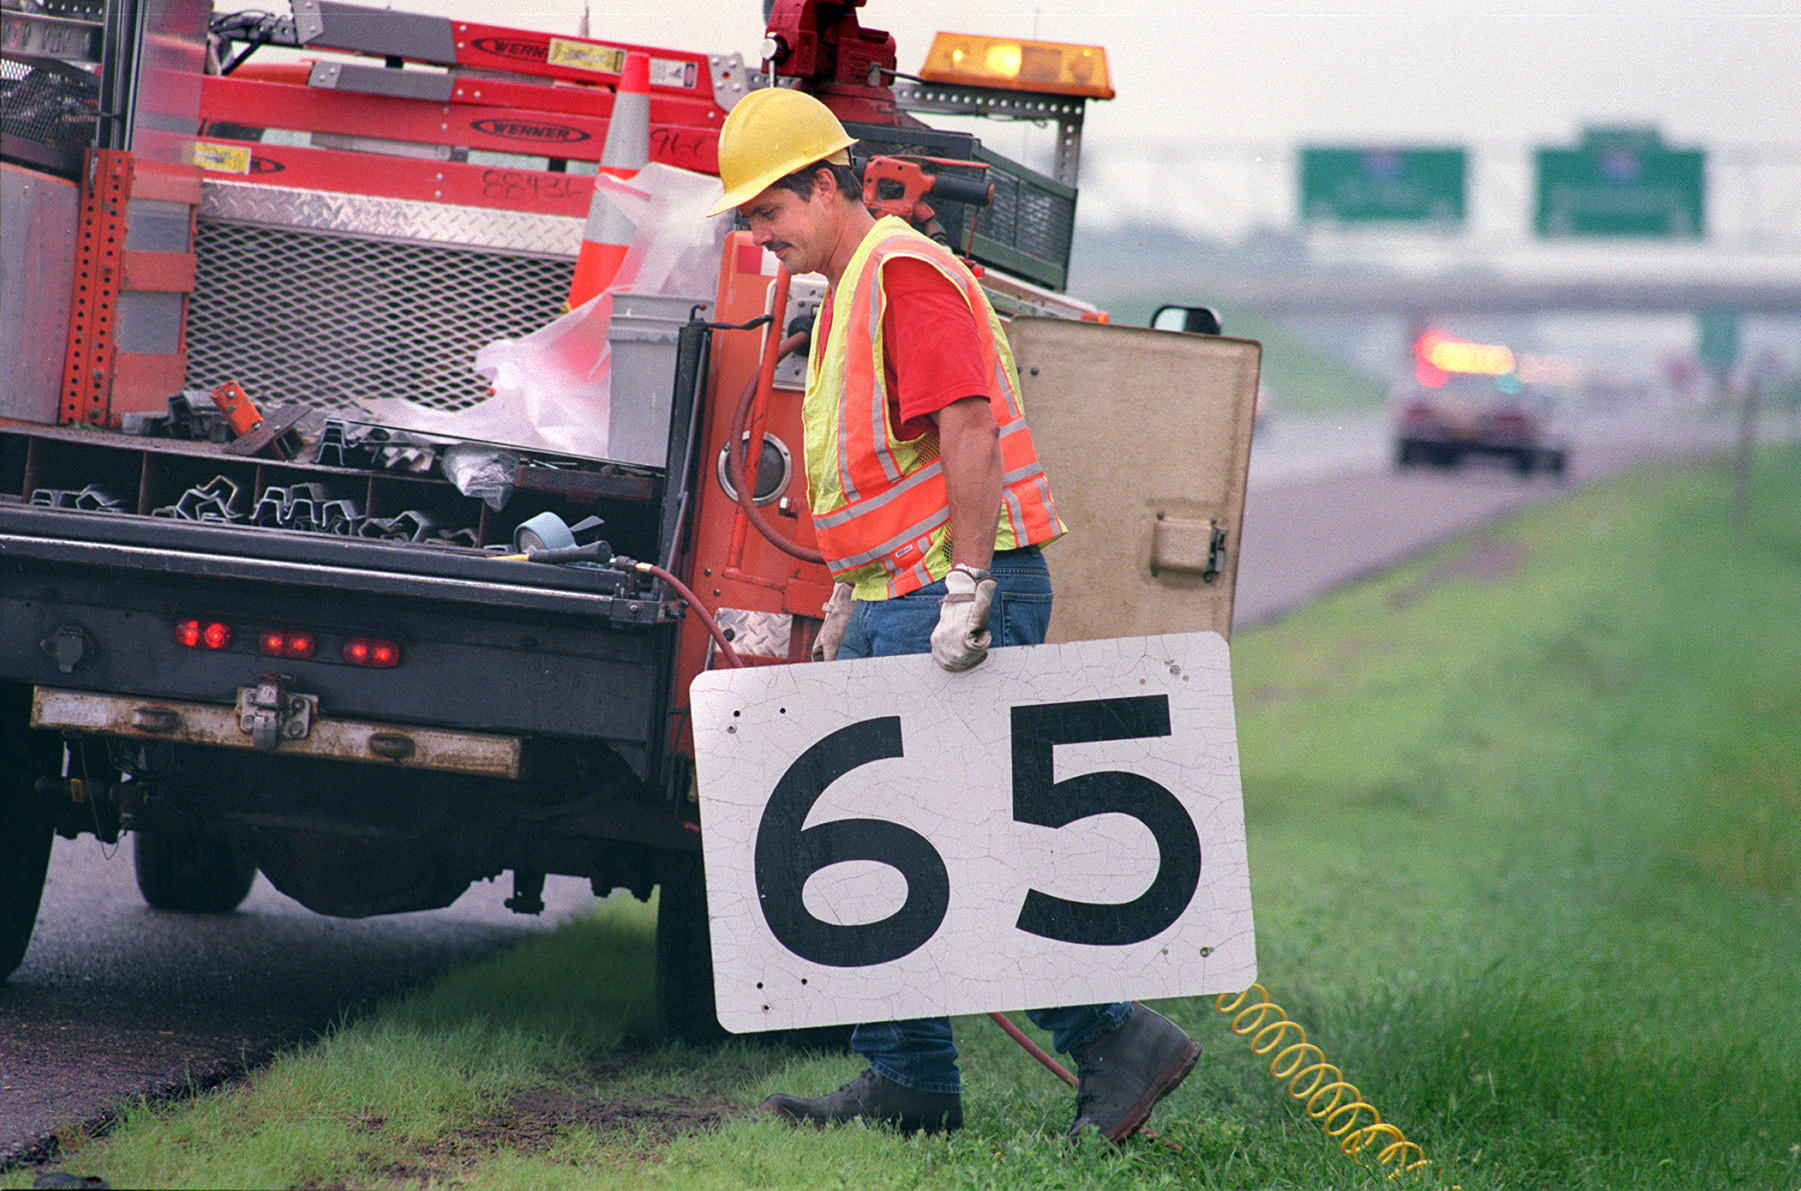 Myron Hennen of the Minnesota Department of Transportation's Oakdale sign shop carries away the old 65 mph speed limit sign after replacing it with a new 70 mph sign on southbound Interstate 35 south of Forest Lake, Minn. on June 24, 1997.